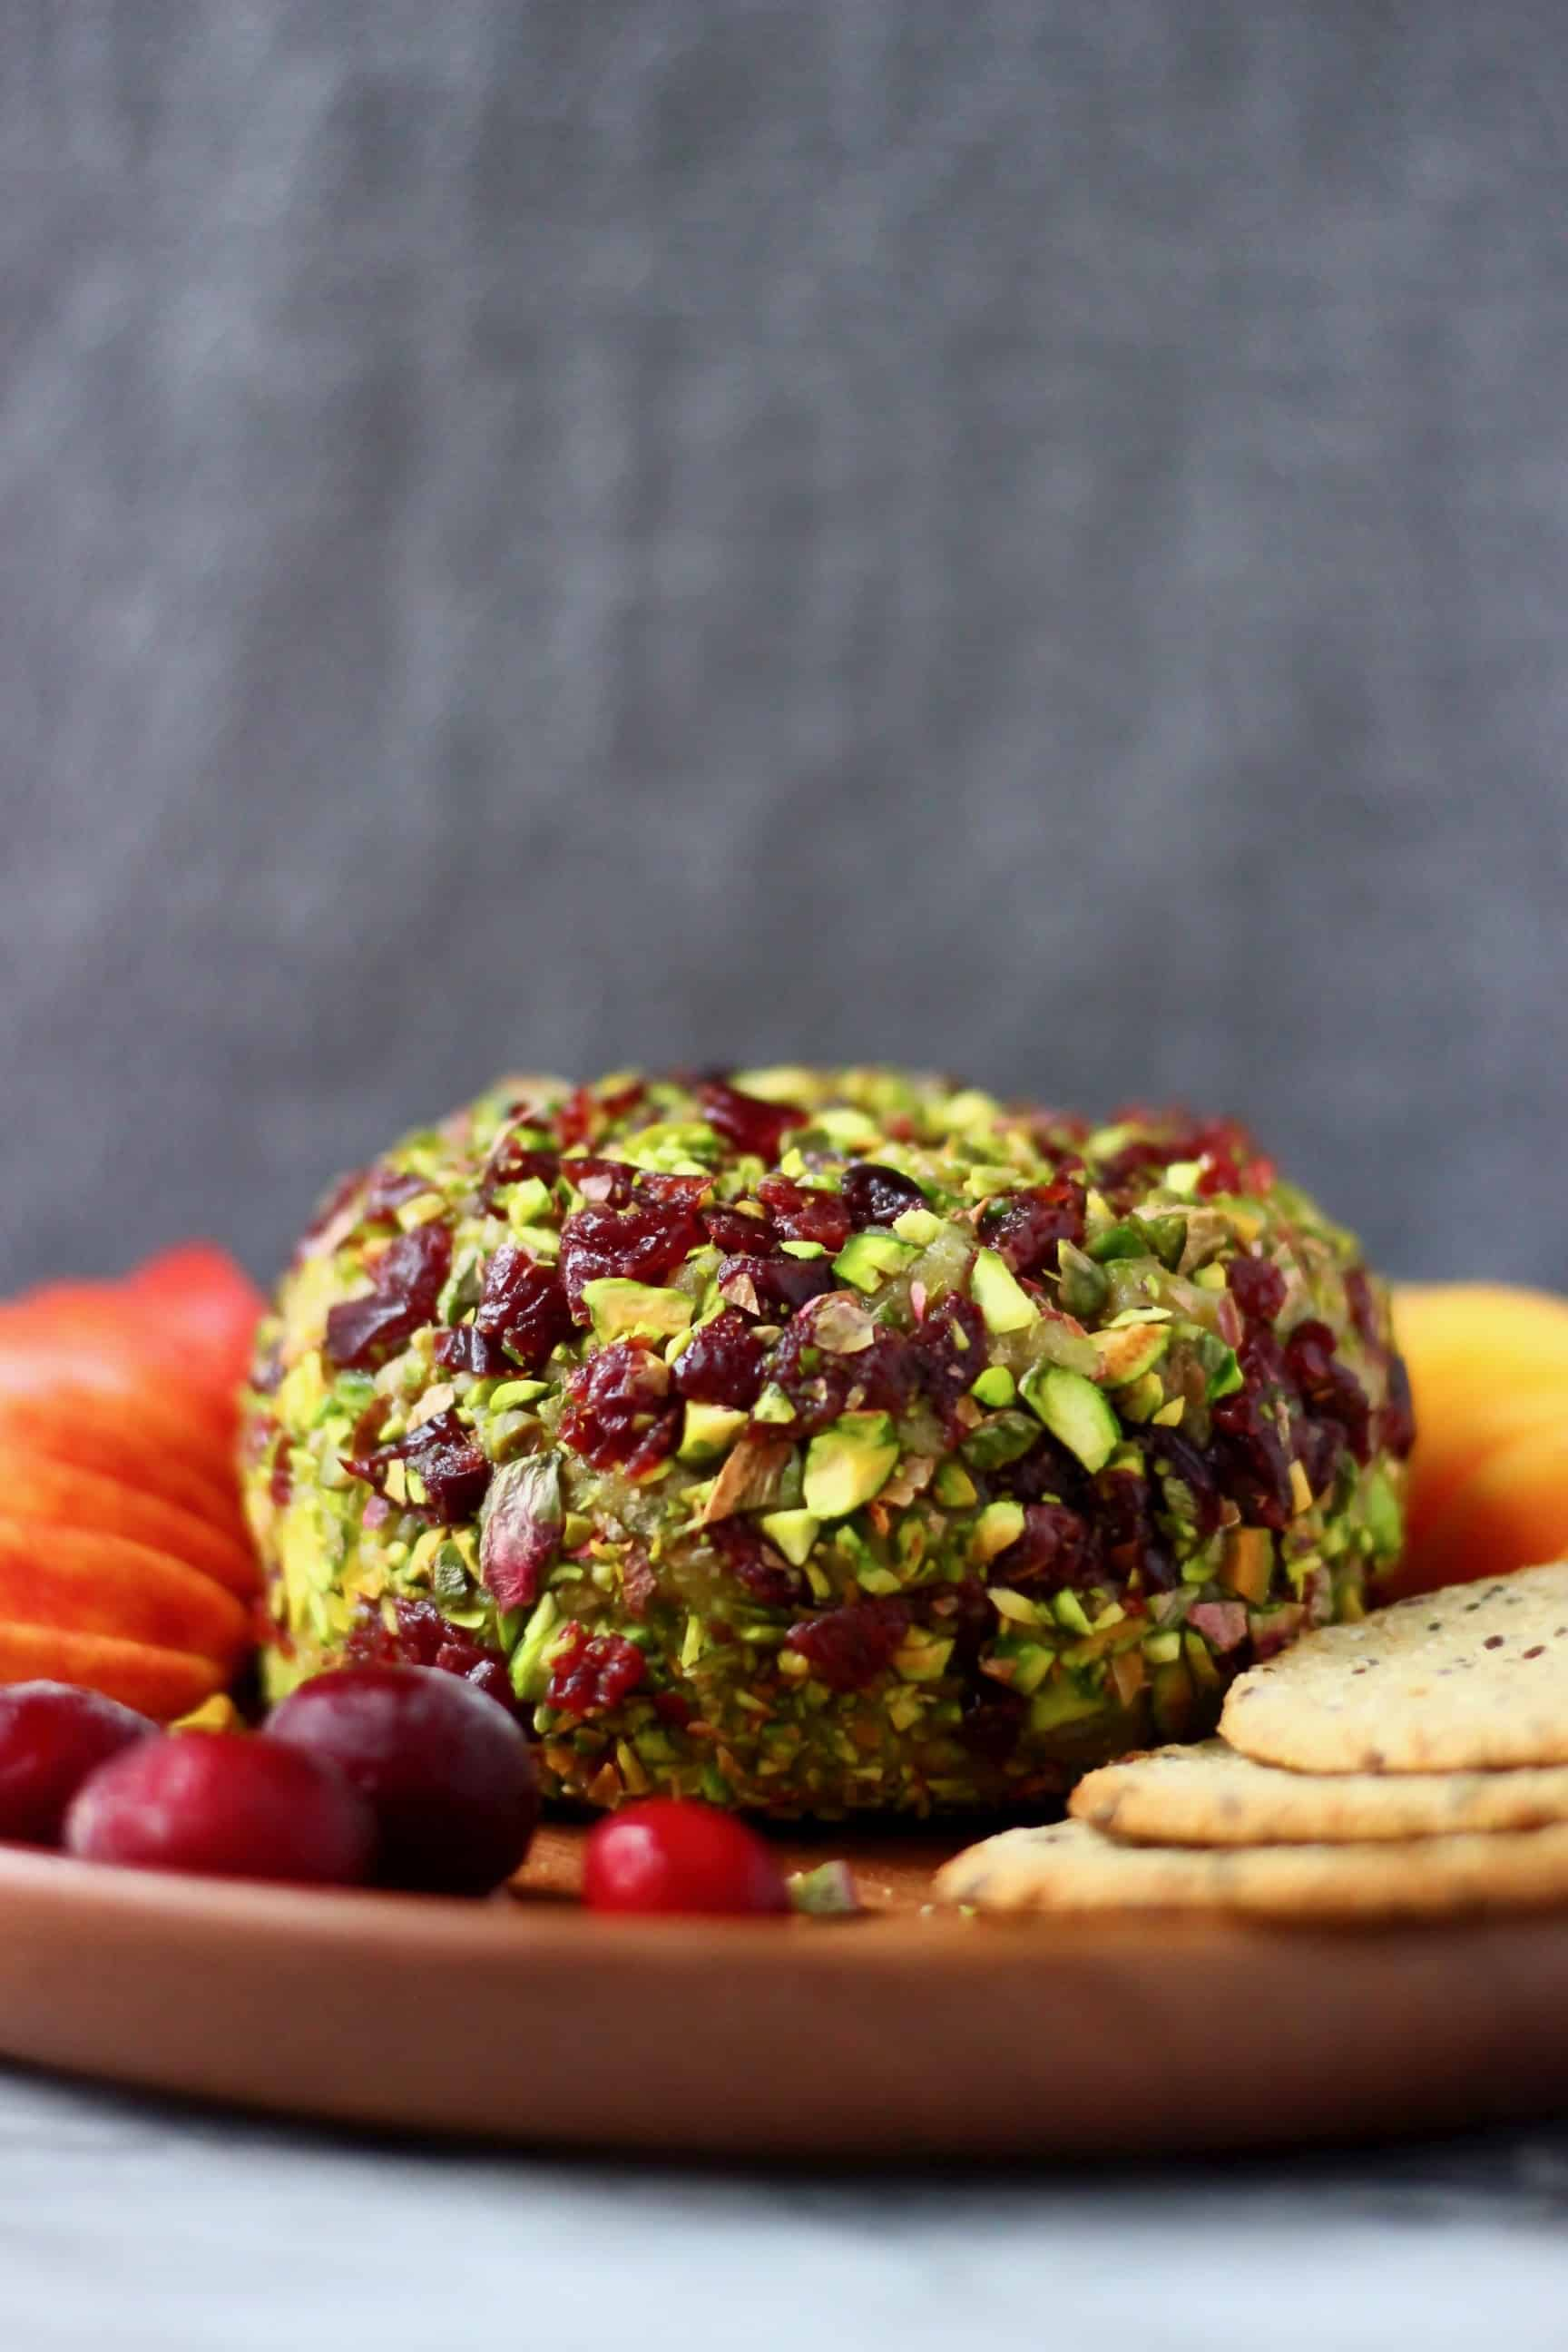 A ball of vegan cashew cheese covered with chopped pistachios and dried cranberries on a wooden plate with sliced apples and oatcakes